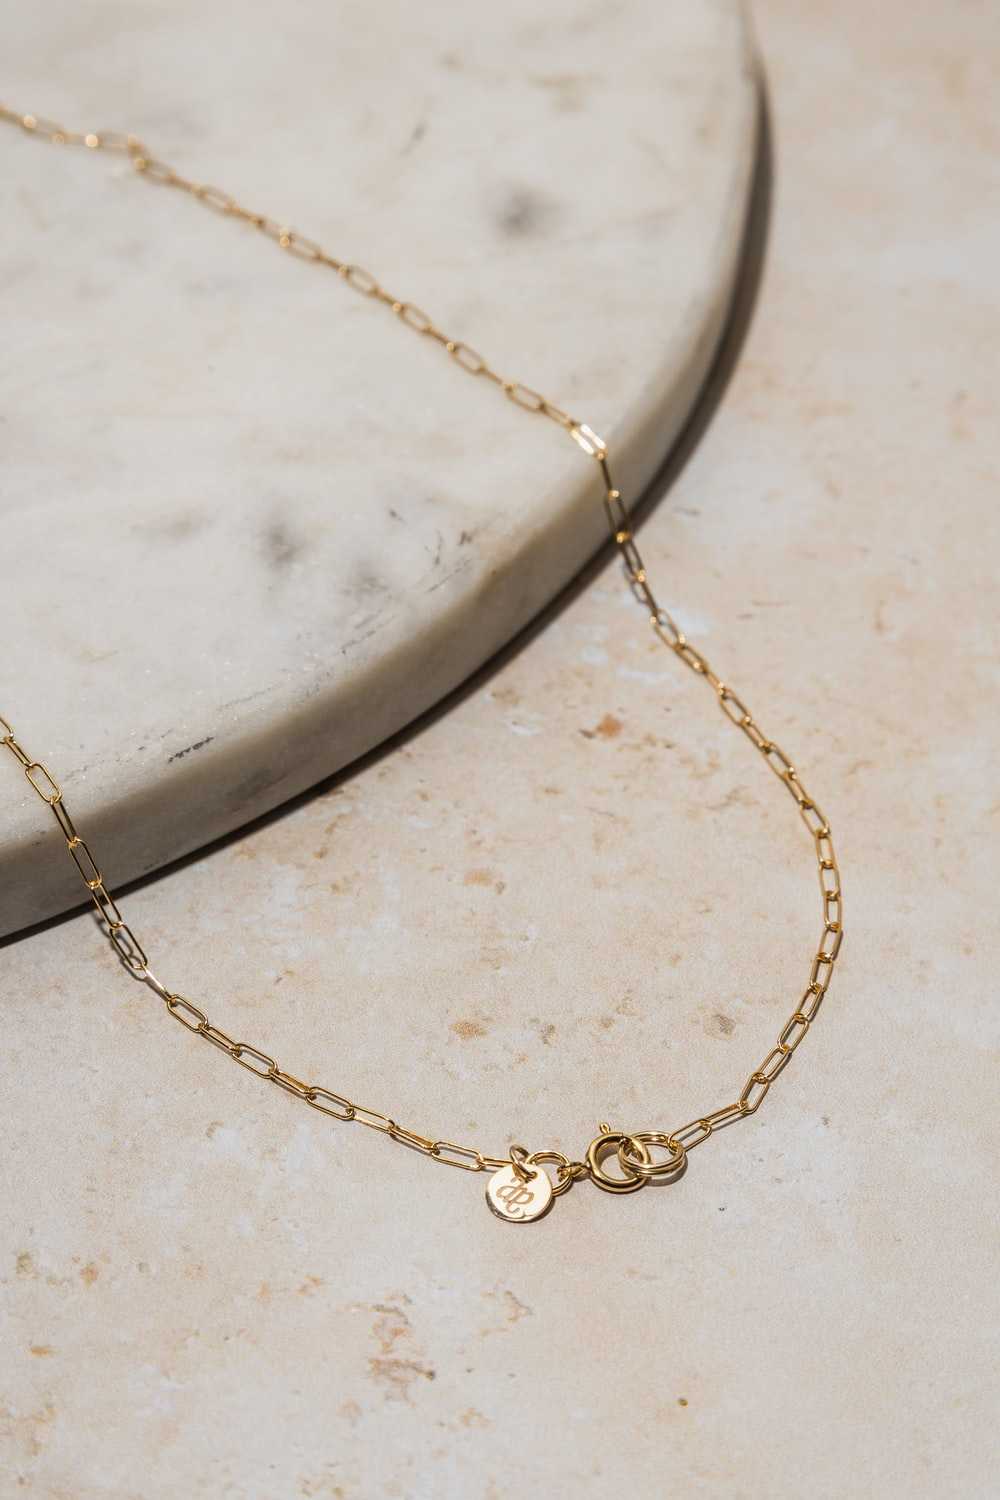 gold necklace on white marble table